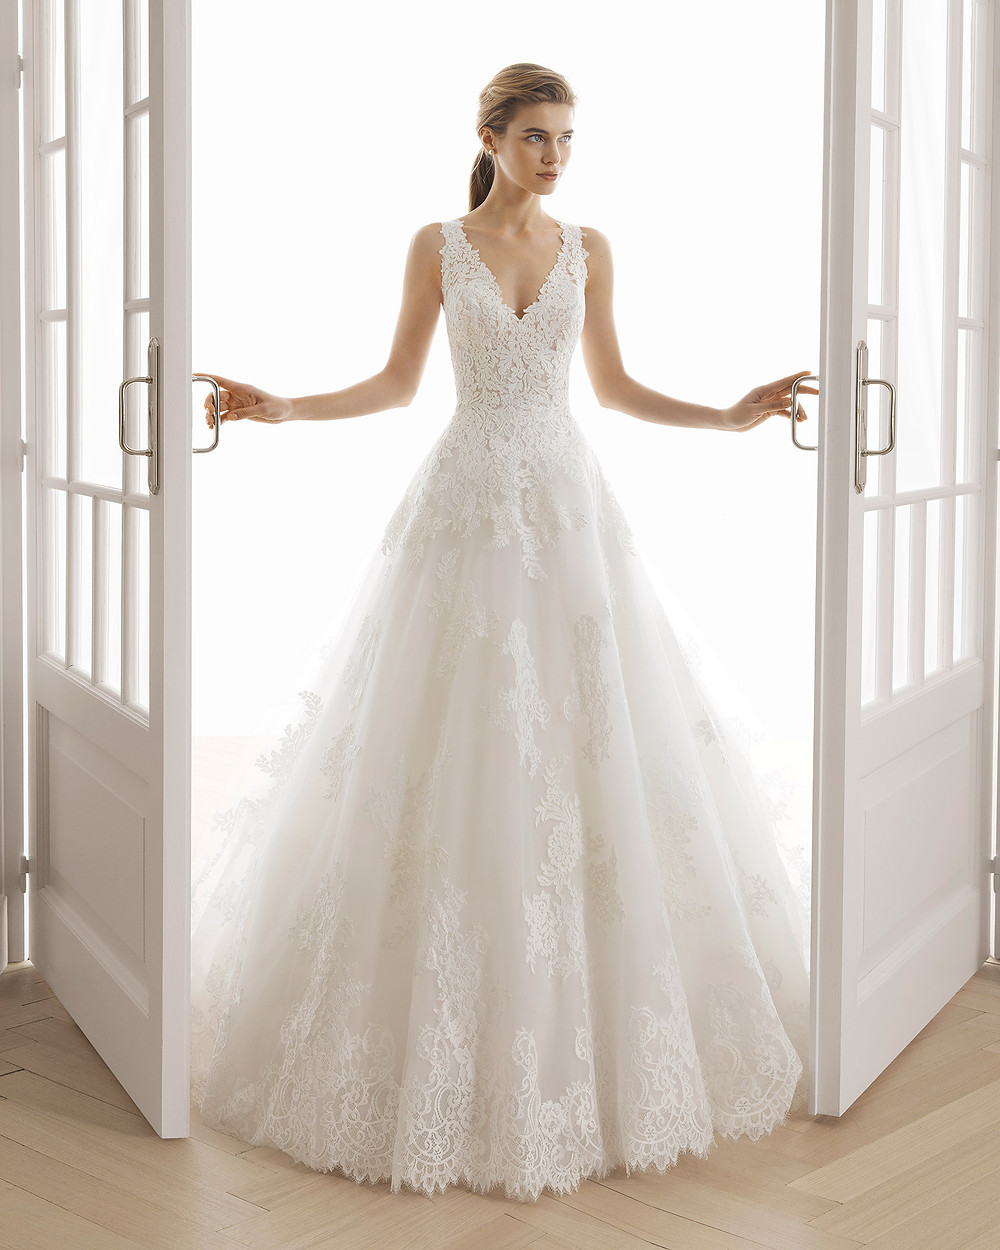 An Aire Barcelona 2020 romantic lace and tulle ball gown wedding dress with a v neckline